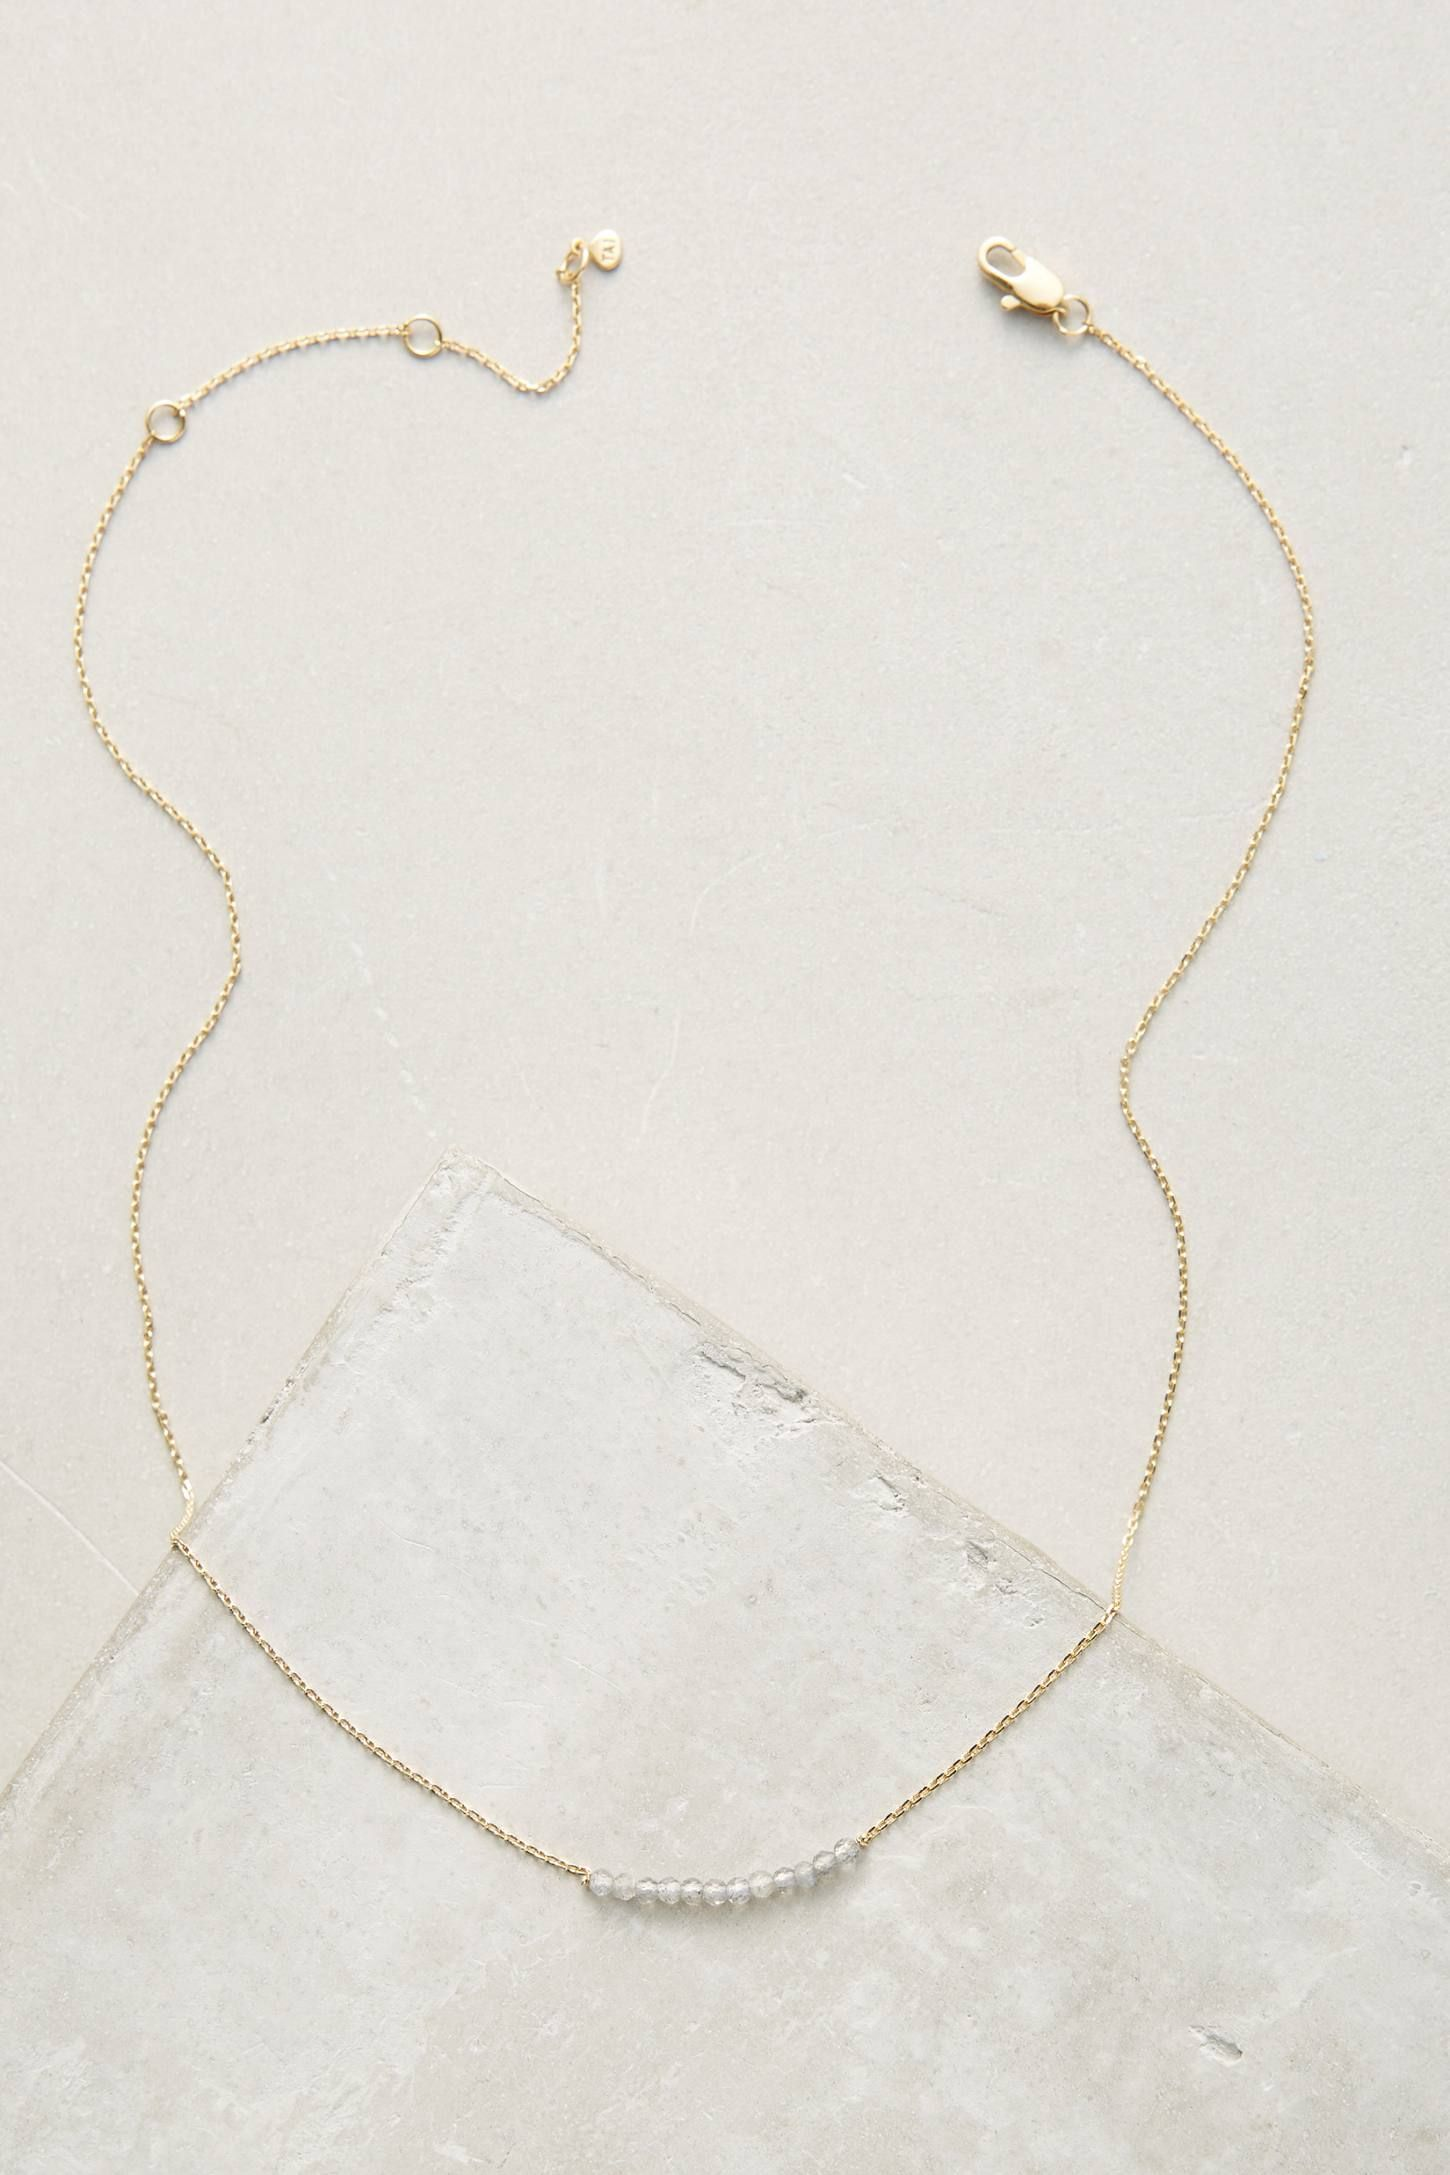 necklaces statement jewelry gives necklace back pin that simple